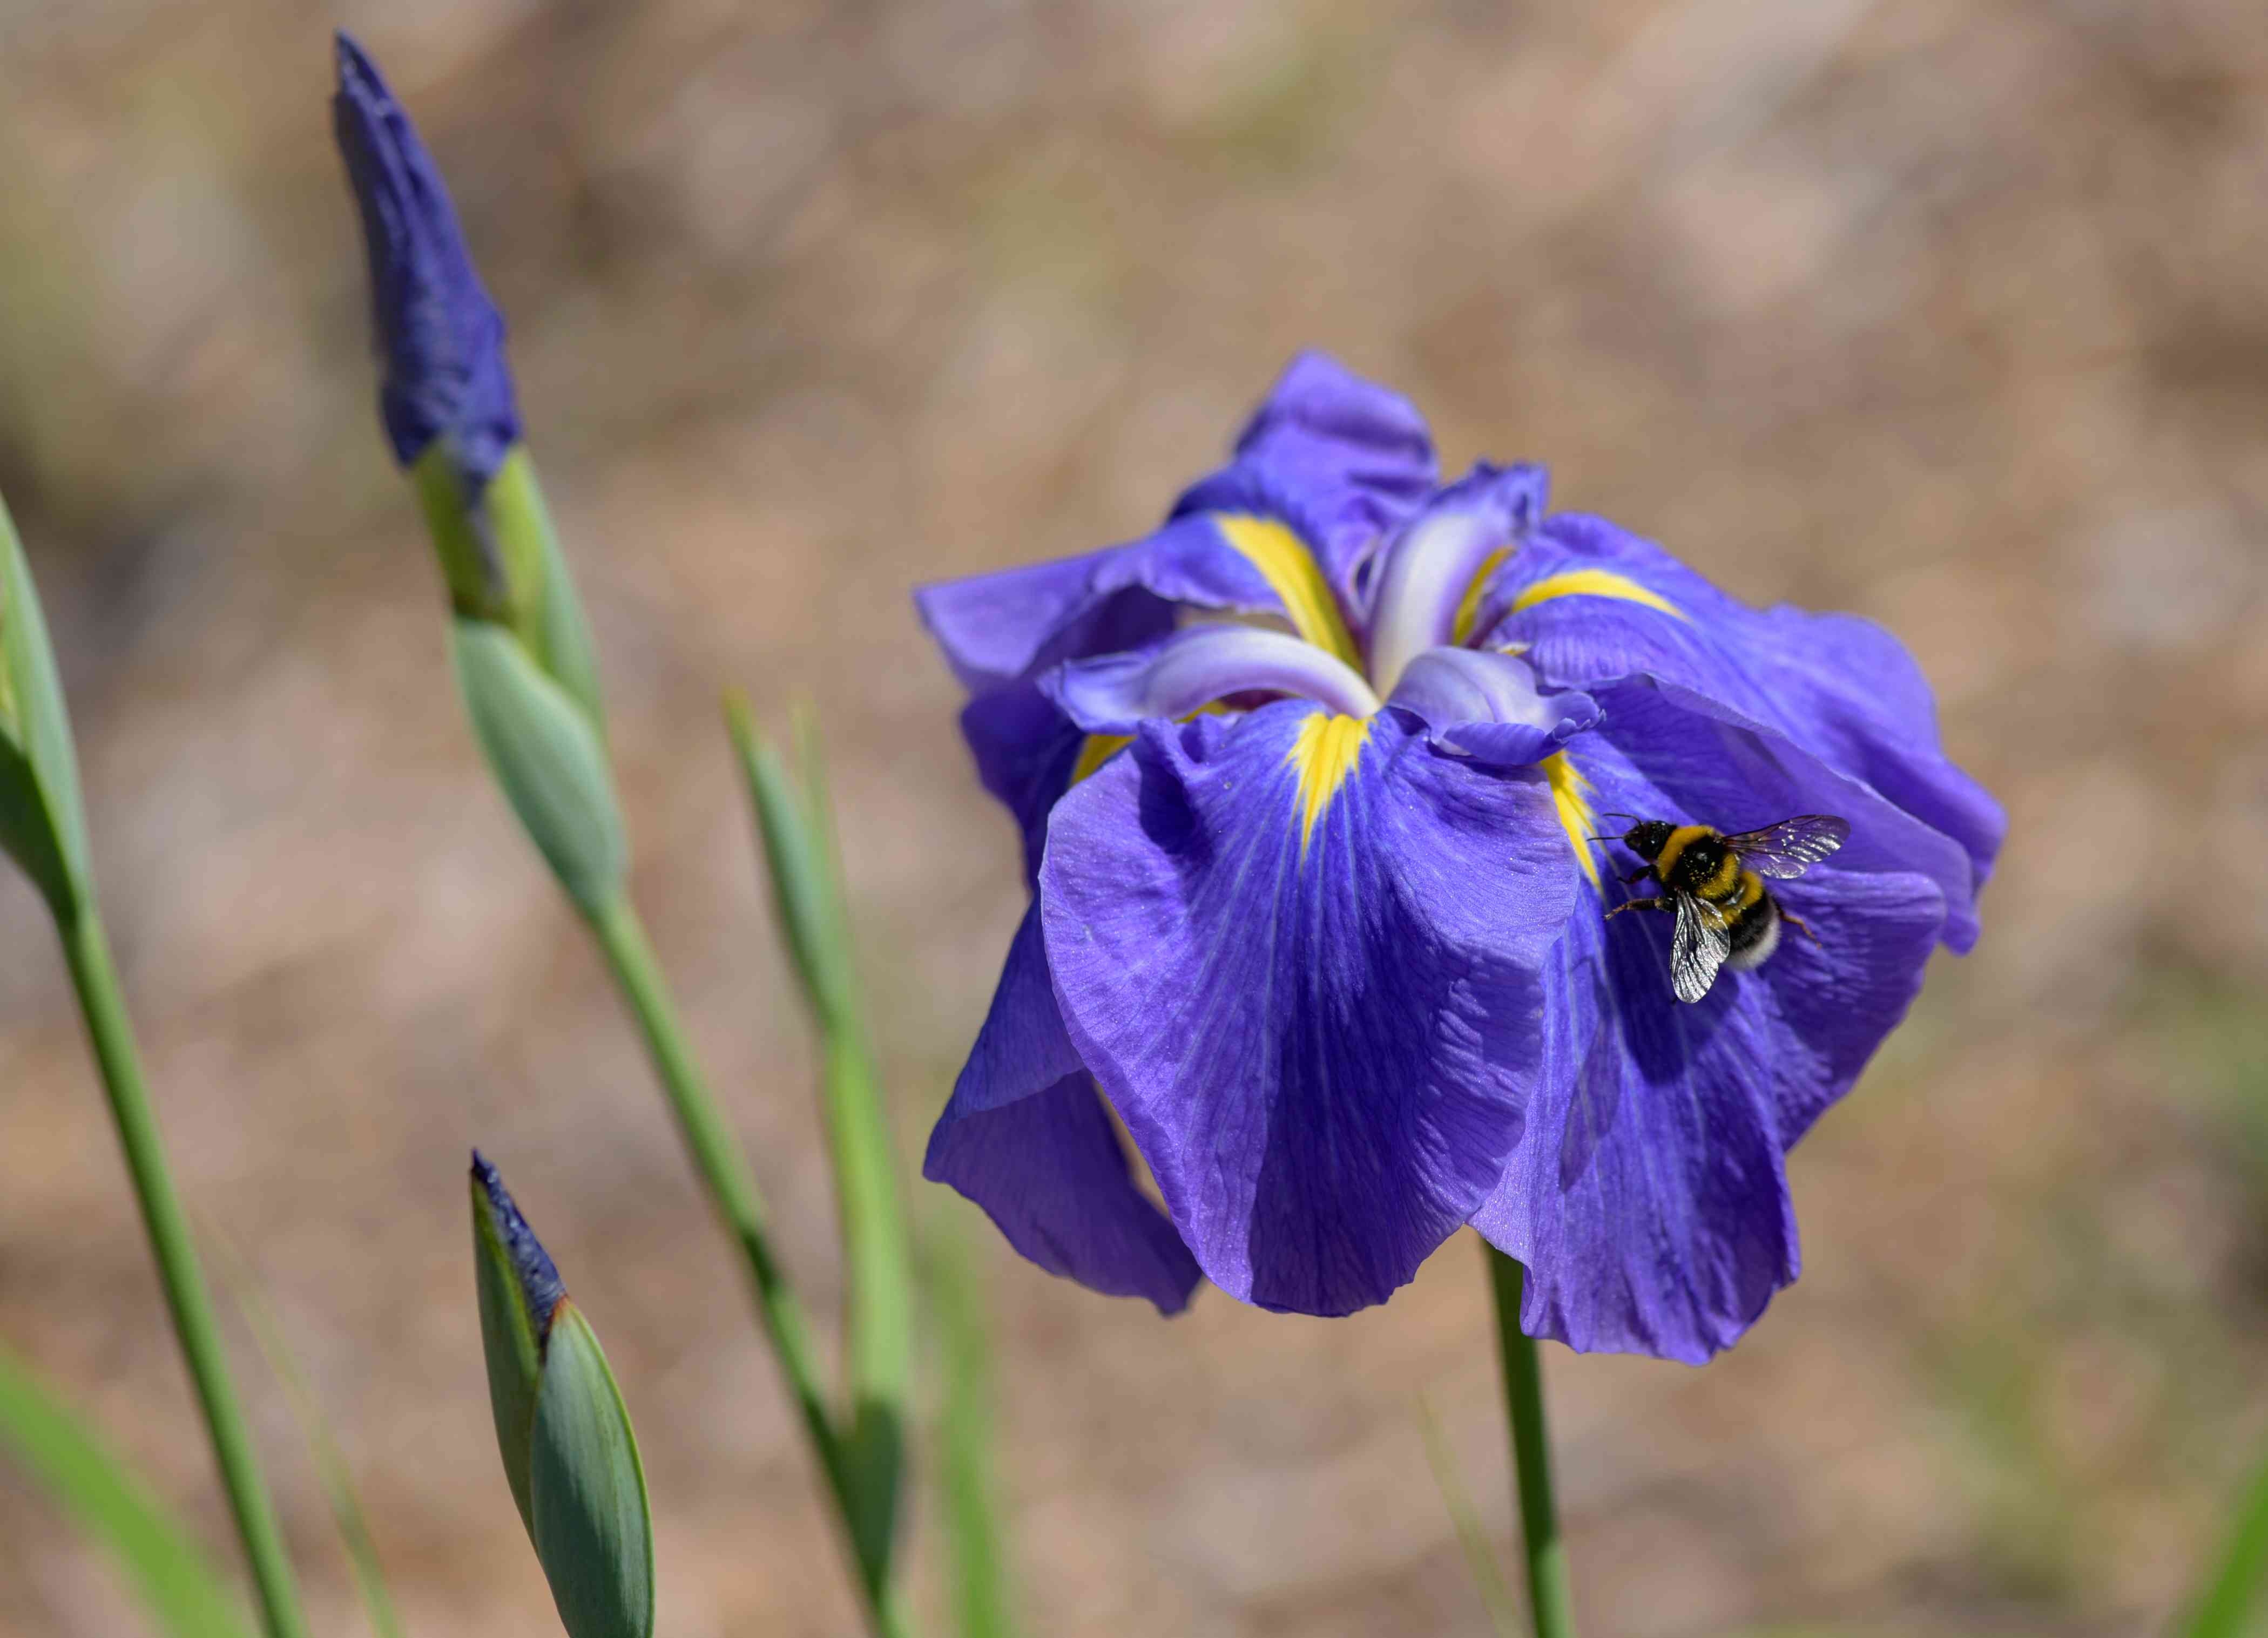 Japanese iris plant with flat purple and yellow flowers and buds on thin stems with bee on top closeup